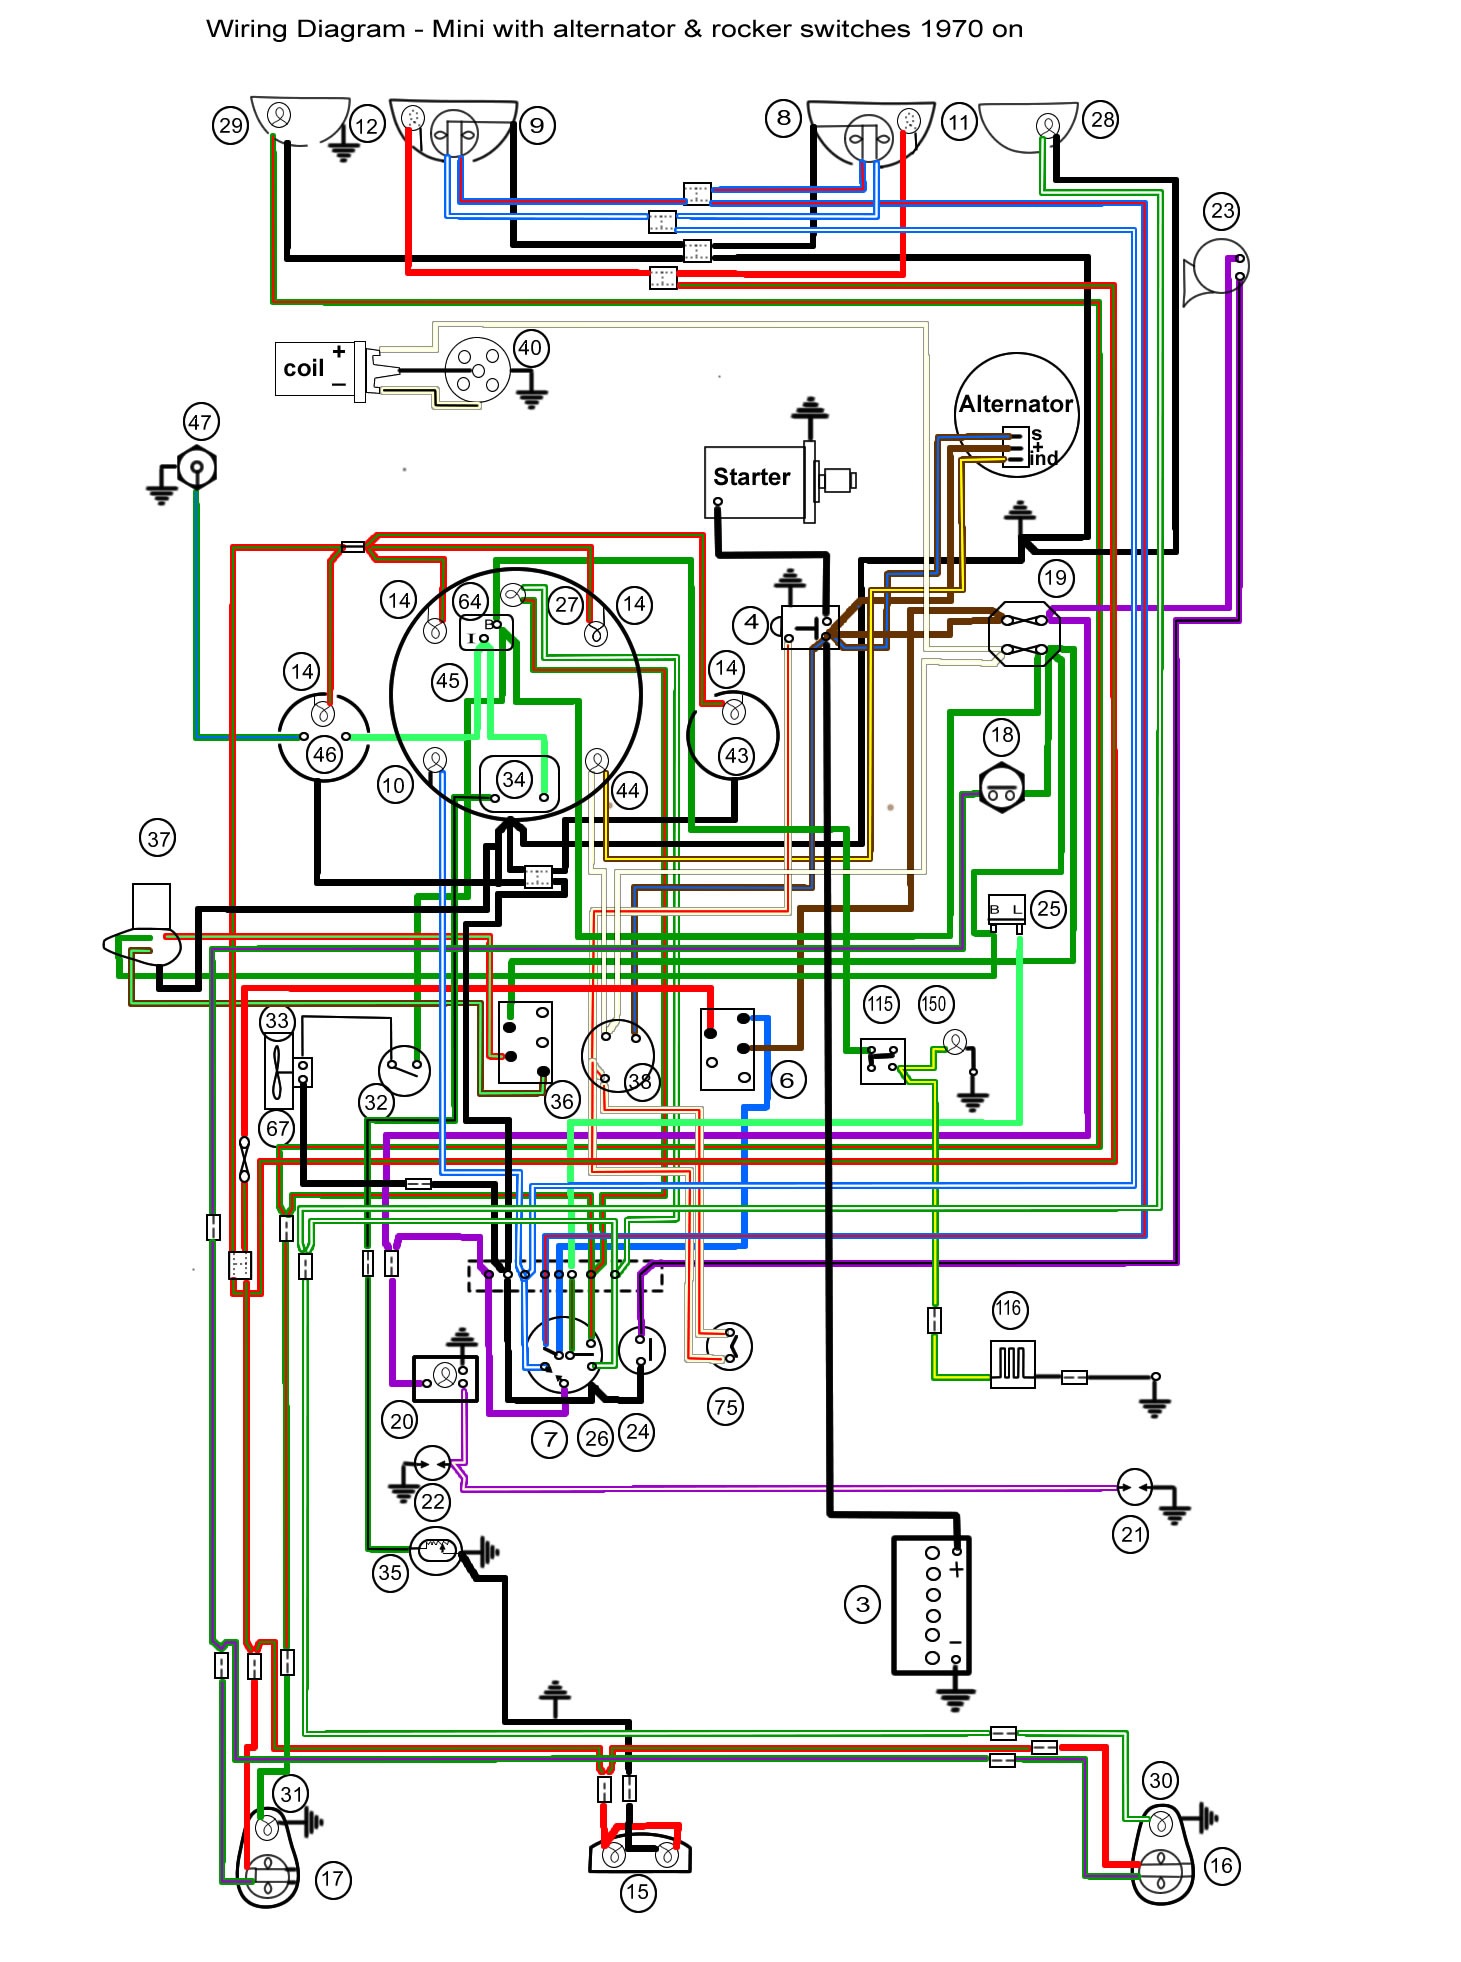 minifinity the classic mini forum and resource u2022 view topic rh minifinity com Residential Electrical Wiring Diagrams Schematic Diagram